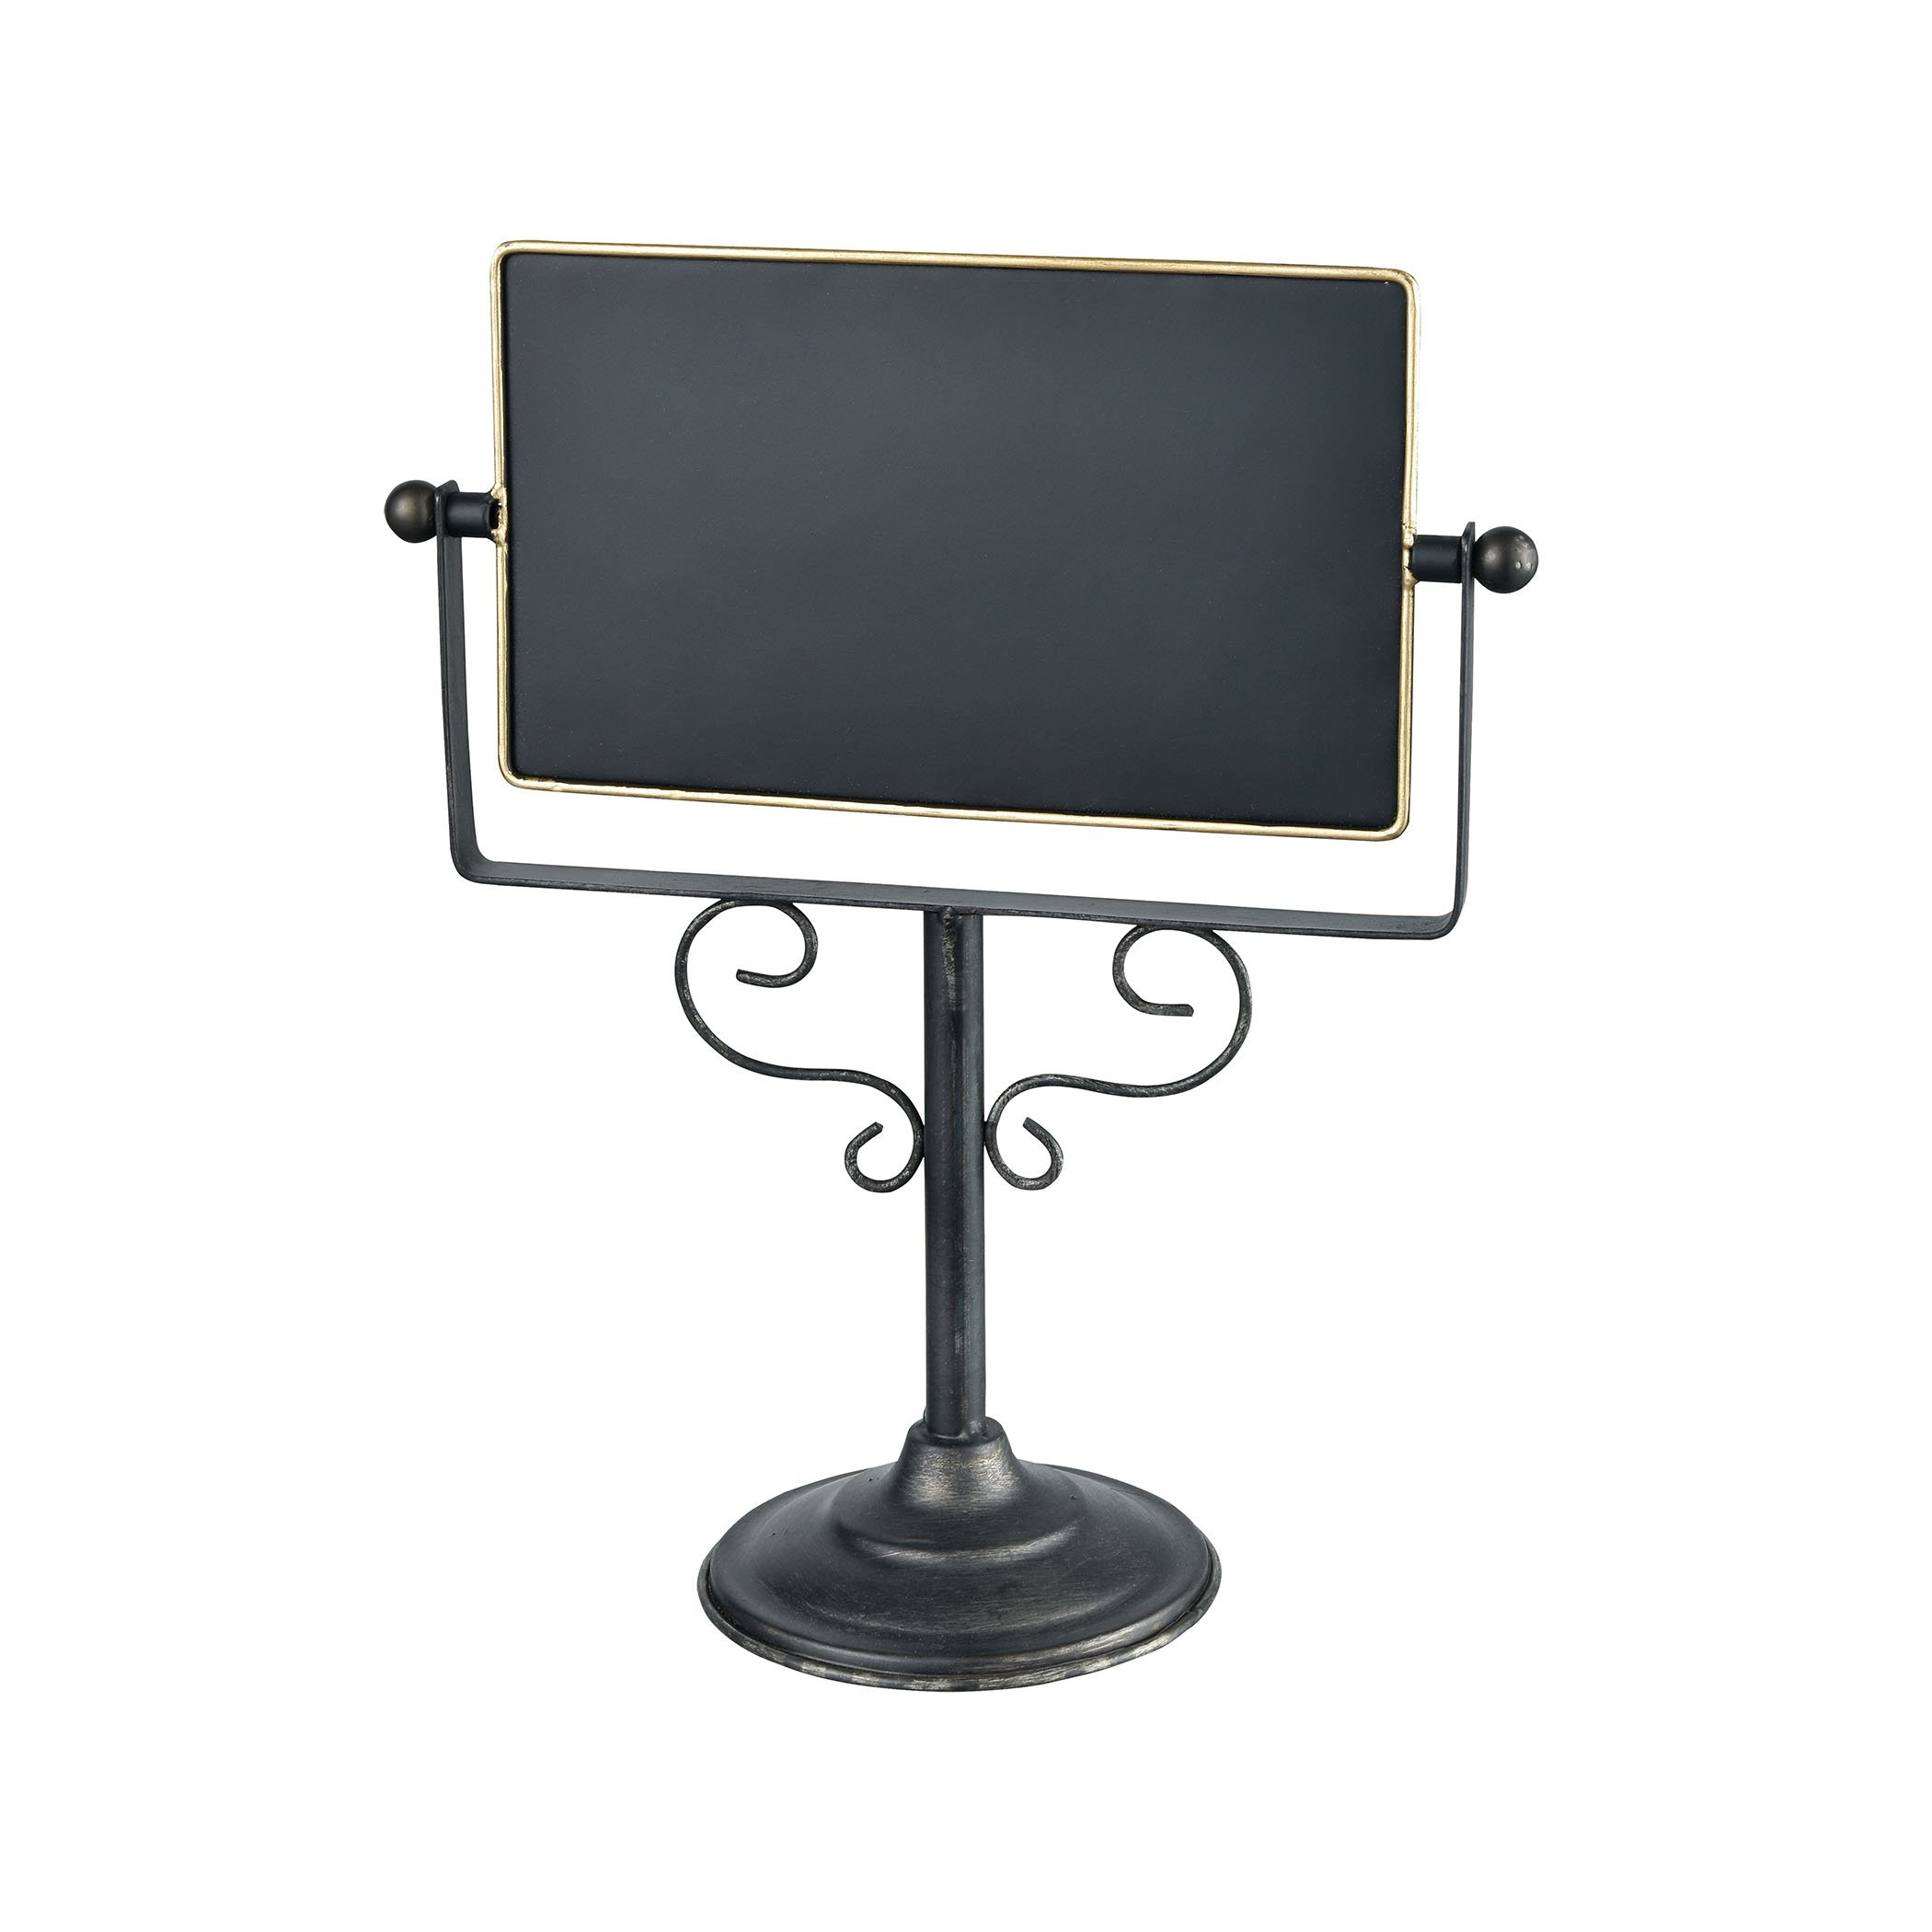 Chateau 10 x 11.5 Inch Decorative Tabletop Double Sided Chalkboard on Pedestal Stand